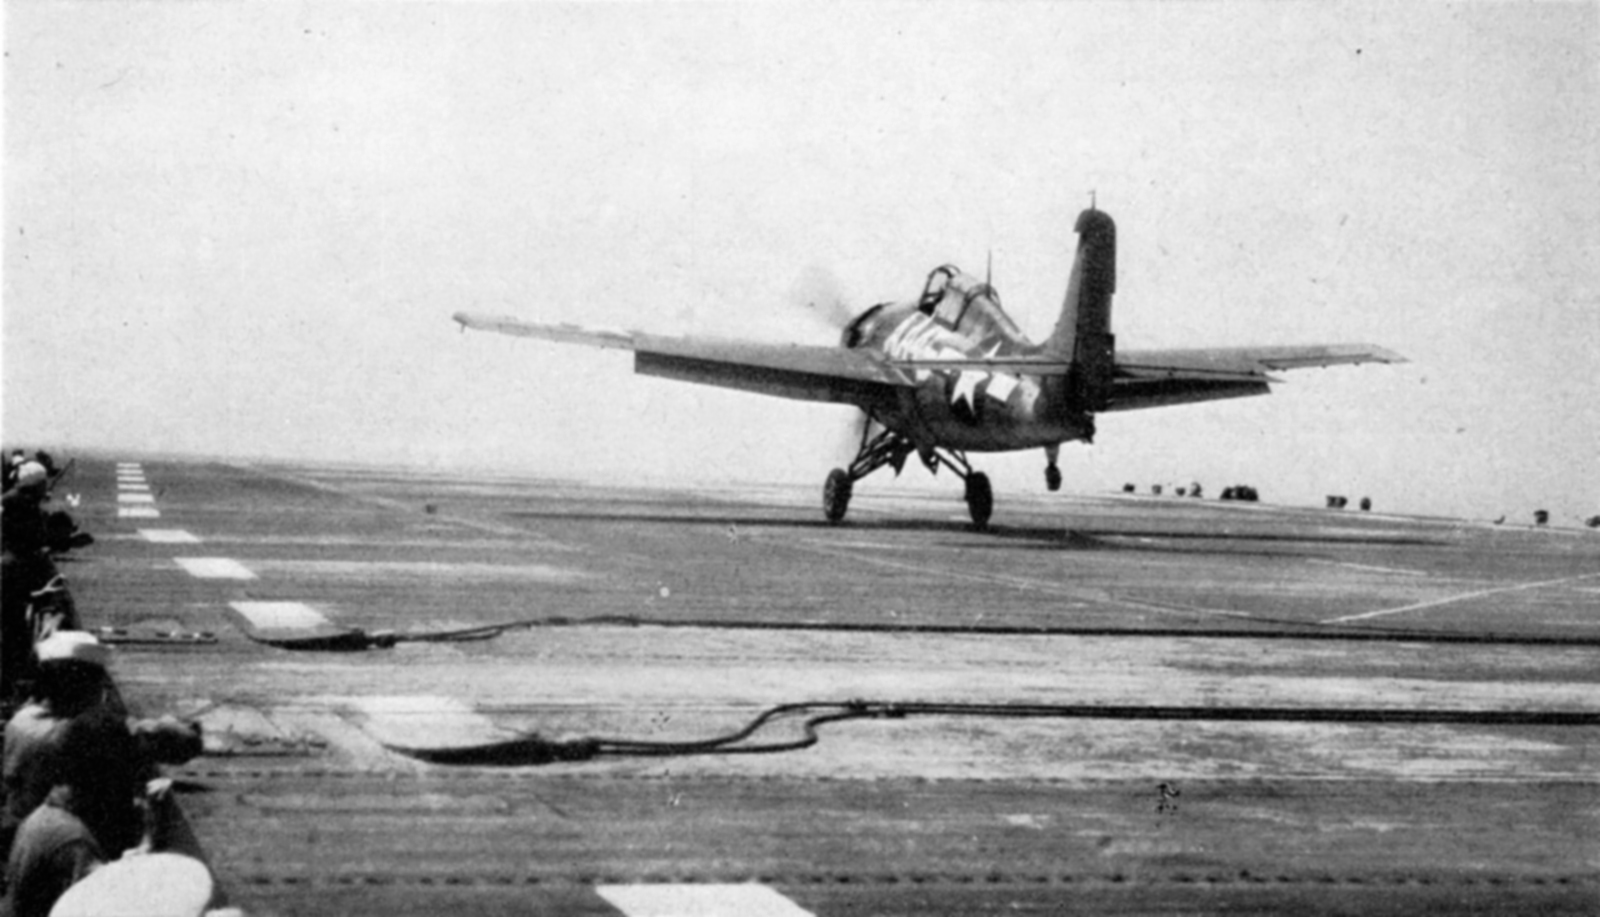 FM 2 Wildcat taking off with right rudder to prevent cross wind 01